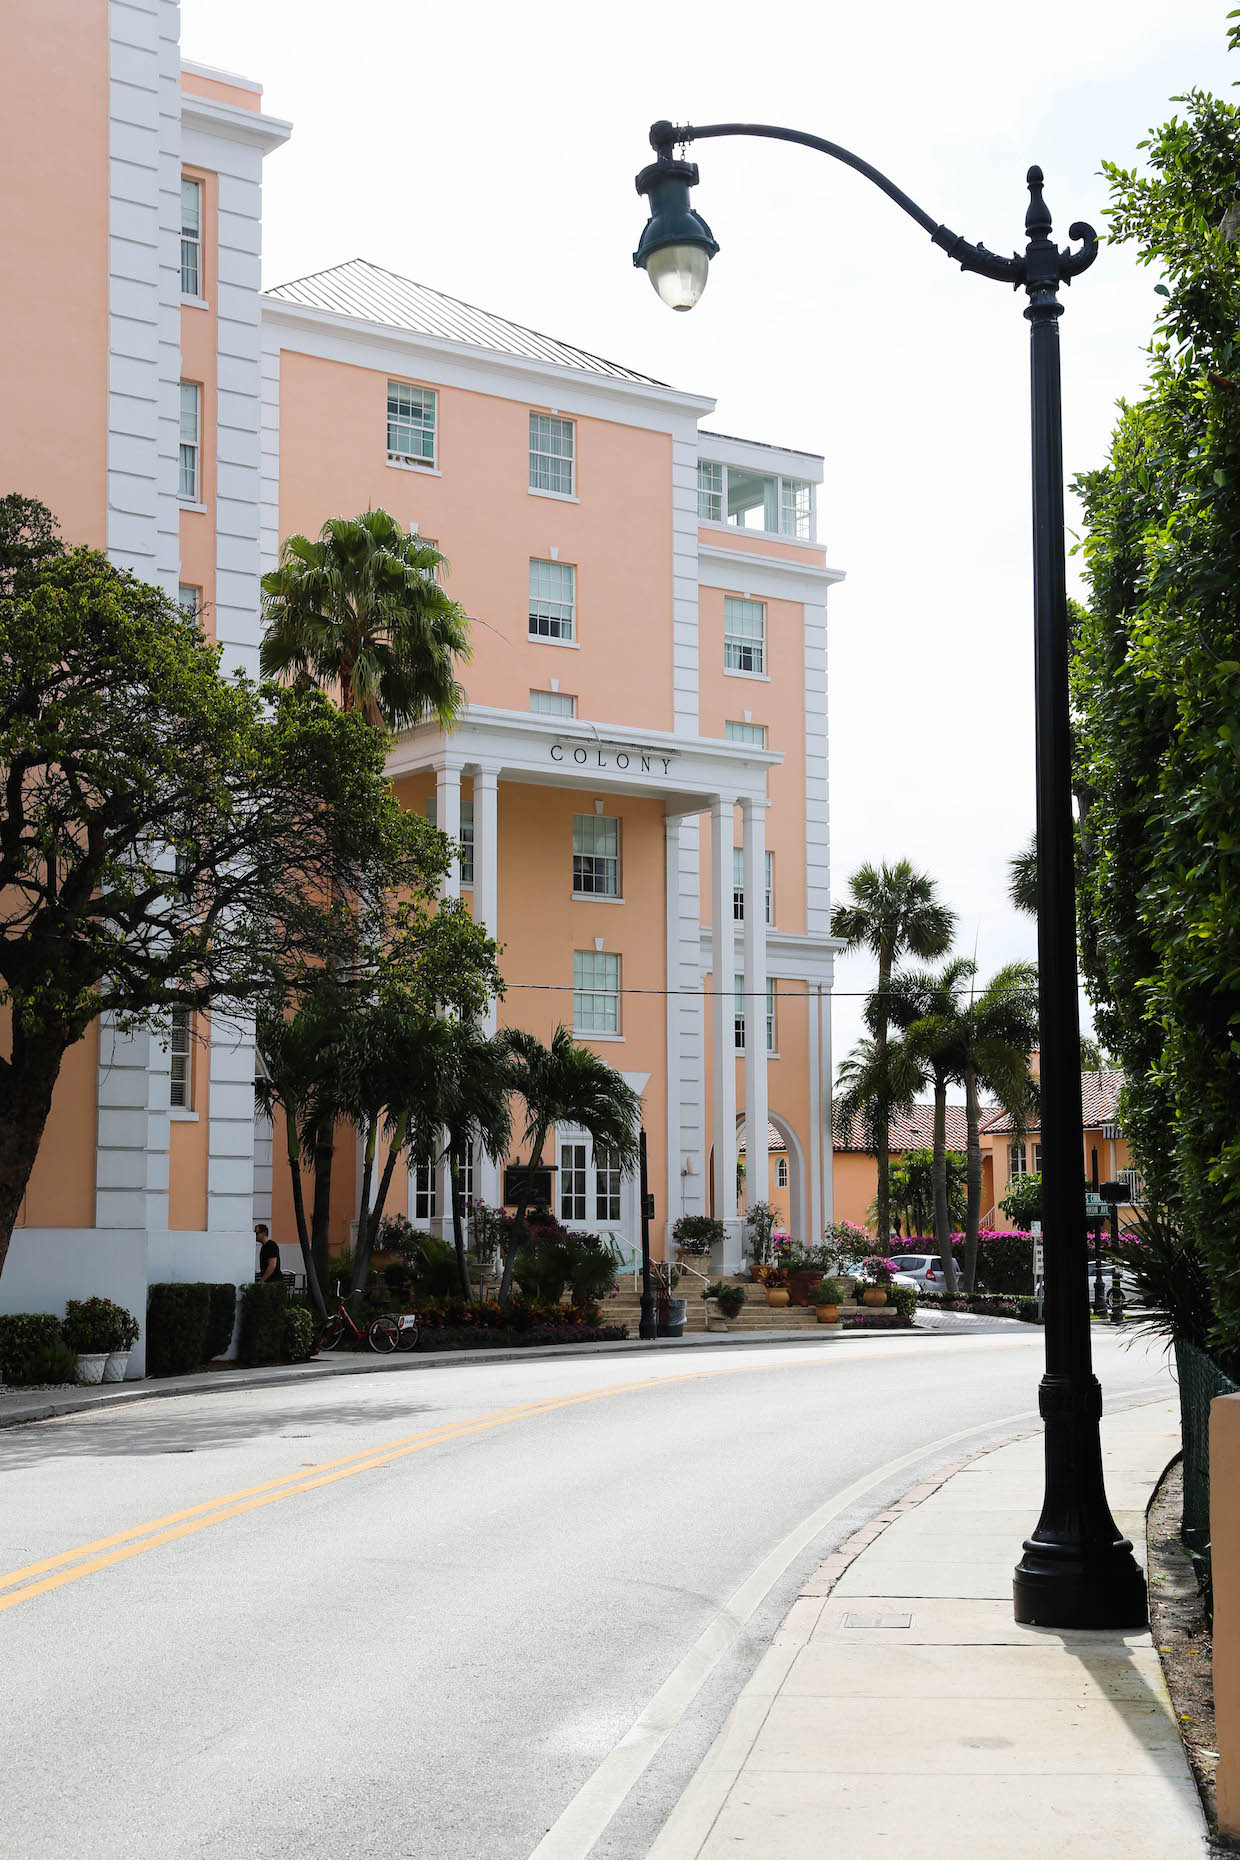 the-colony-hotel-palm-beach-florida